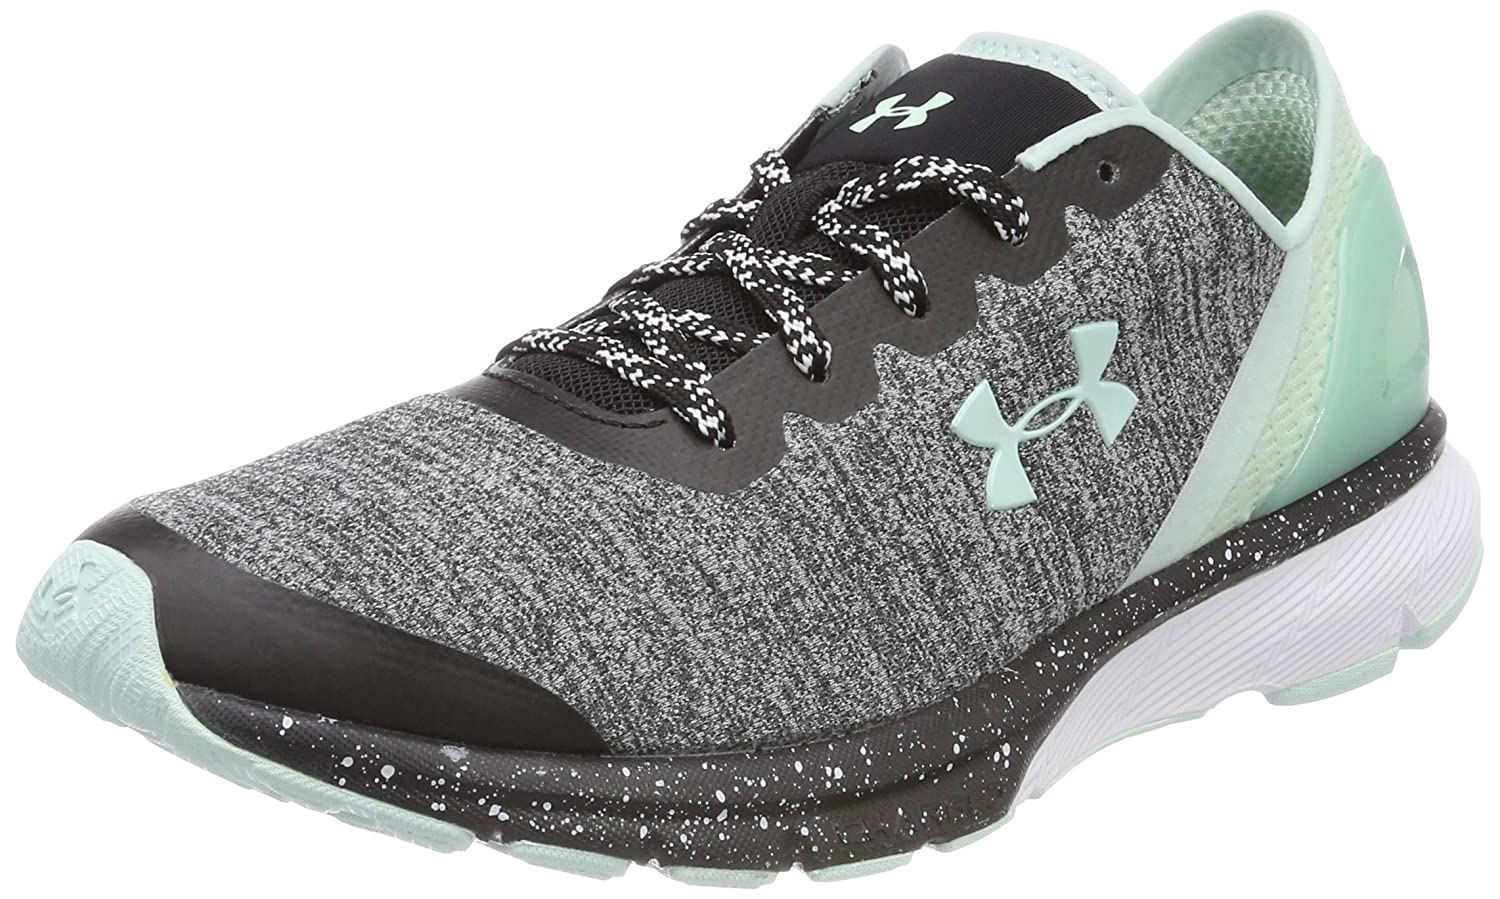 Under Armour Women's Charged Escape Running Shoes - SS18 B075MPK51Y 6 B(M) US Black/White/Refresh Mint